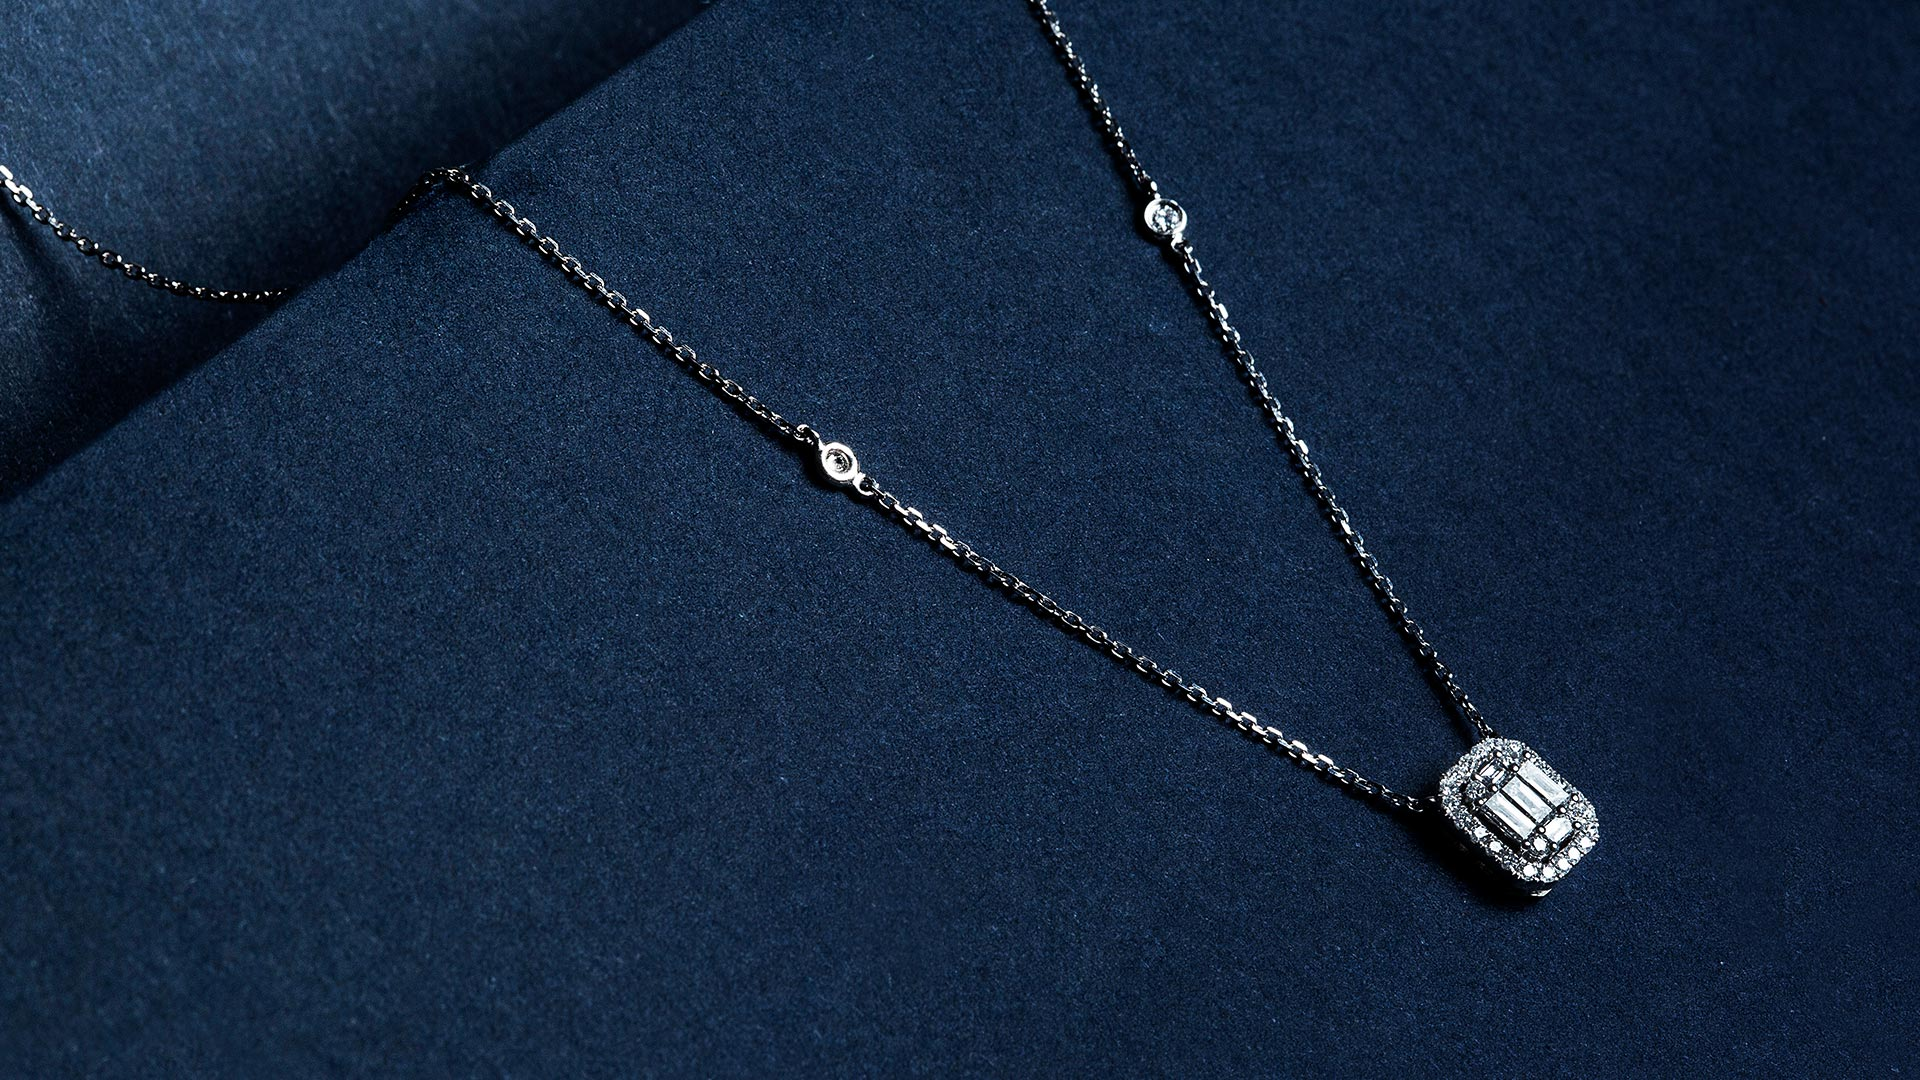 A white gold pendant on a blue background